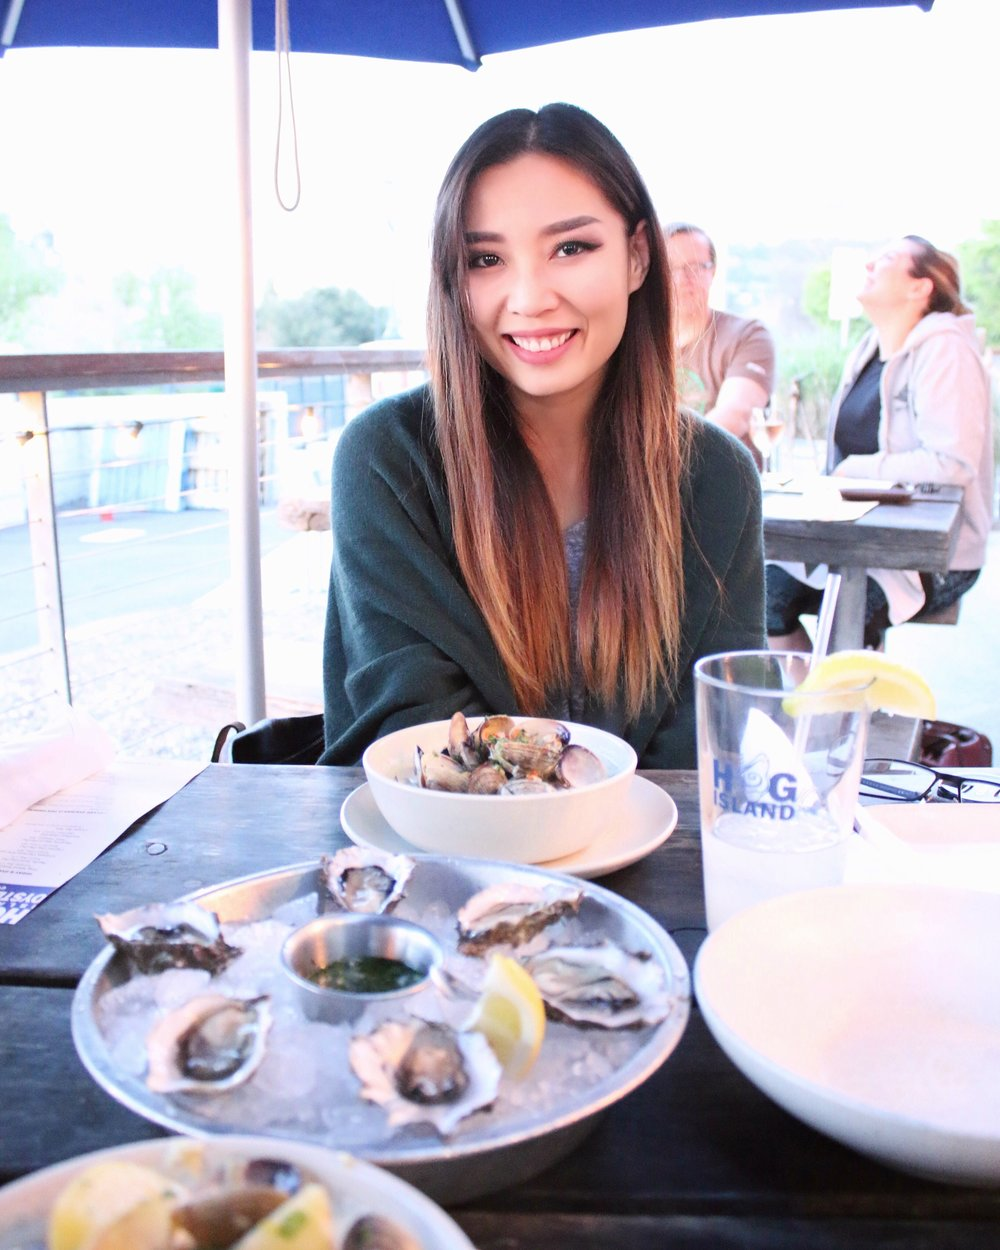 sonoma-wine-county-napa-valley-hogg-island-oysters-3